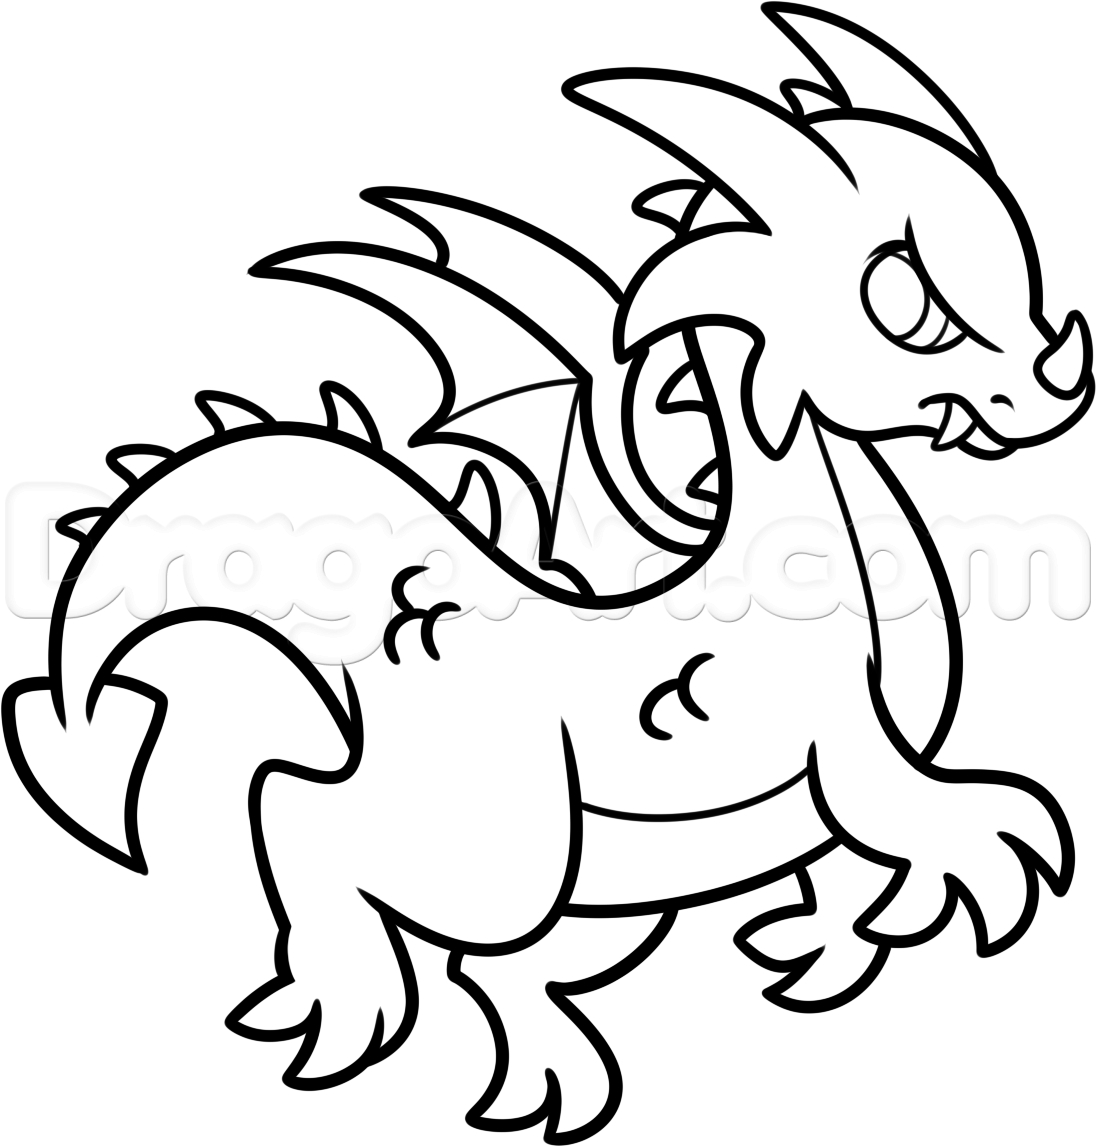 1096x1146 Simple Pictures For Drawing How To Draw A Simple Dragon Step 8